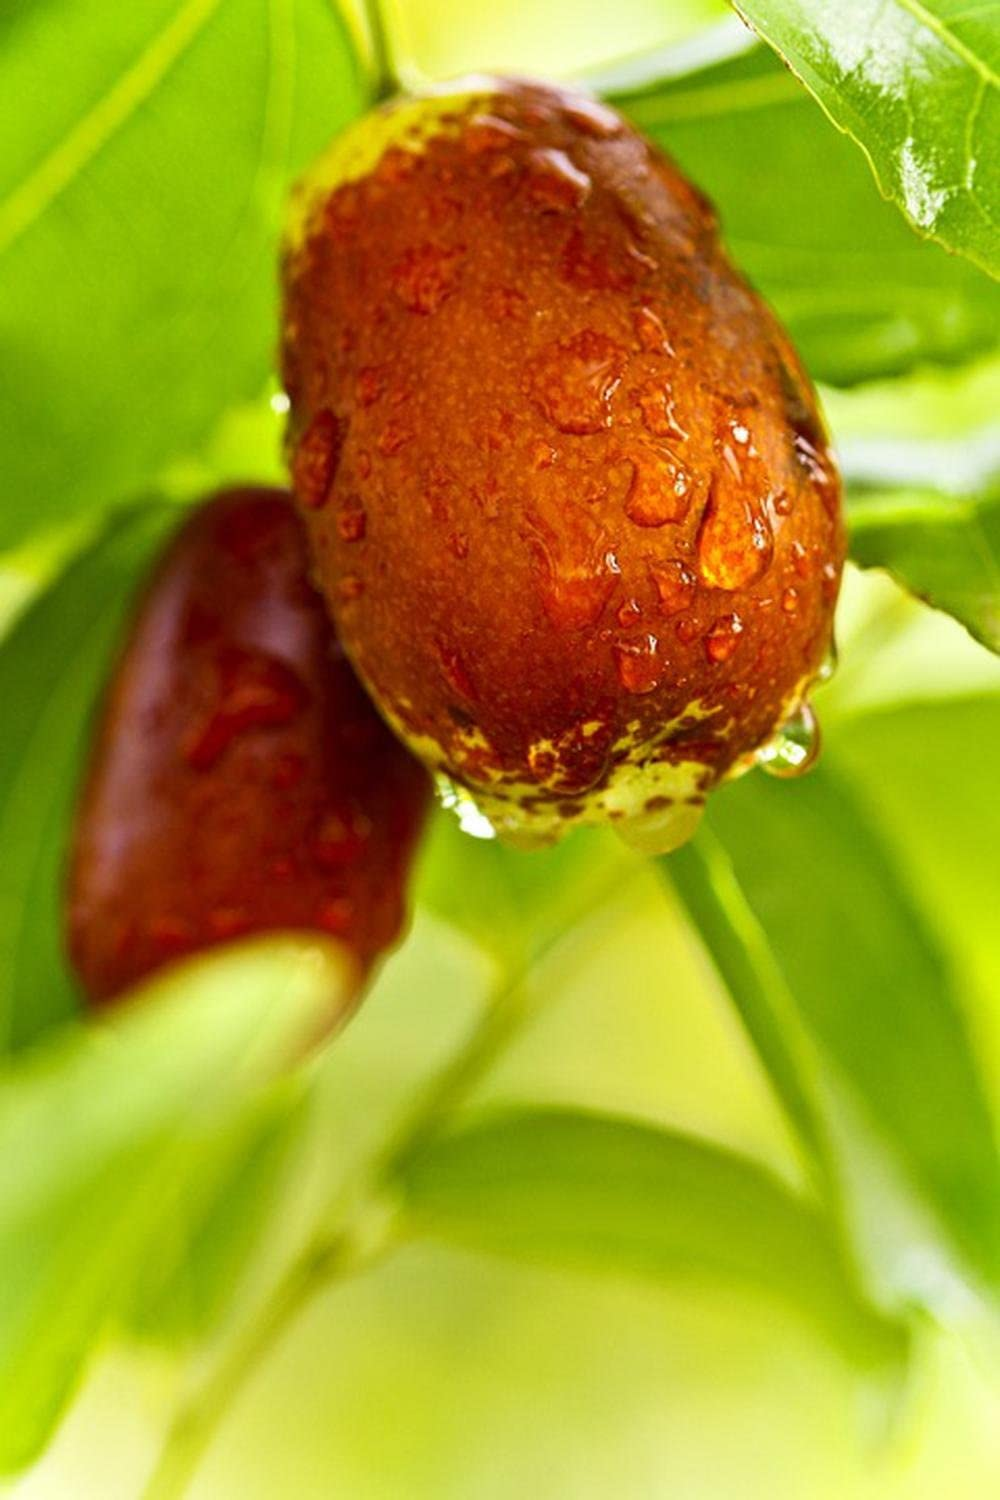 Gifts Delight Laminated 24x36 inches Poster: Jujube Food Date Date Tree Fruit Health Raindrops Nature Macro